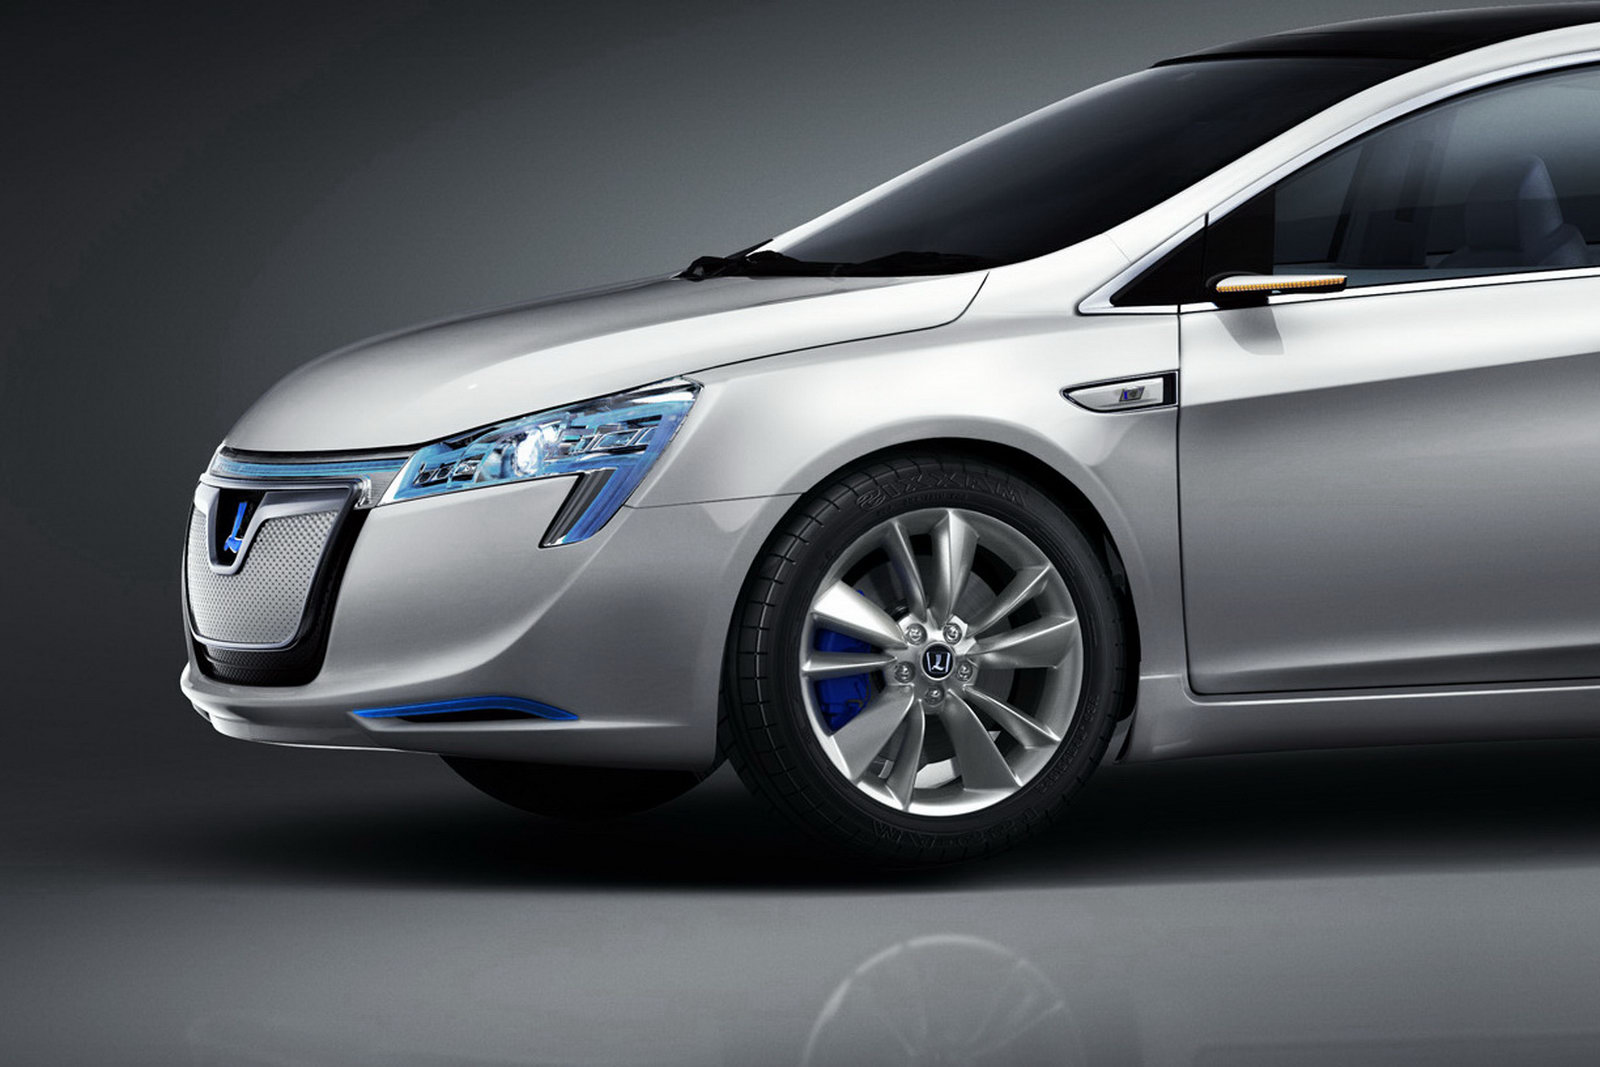 Koh Public Transport System For Short Distances further Luxgen Neora furthermore Renault Megane Cc Features New Wave Edition And Floride also Luxgen Neora further Taiwans Luxgen Shows Off Neora Ev. on luxgen neora concept